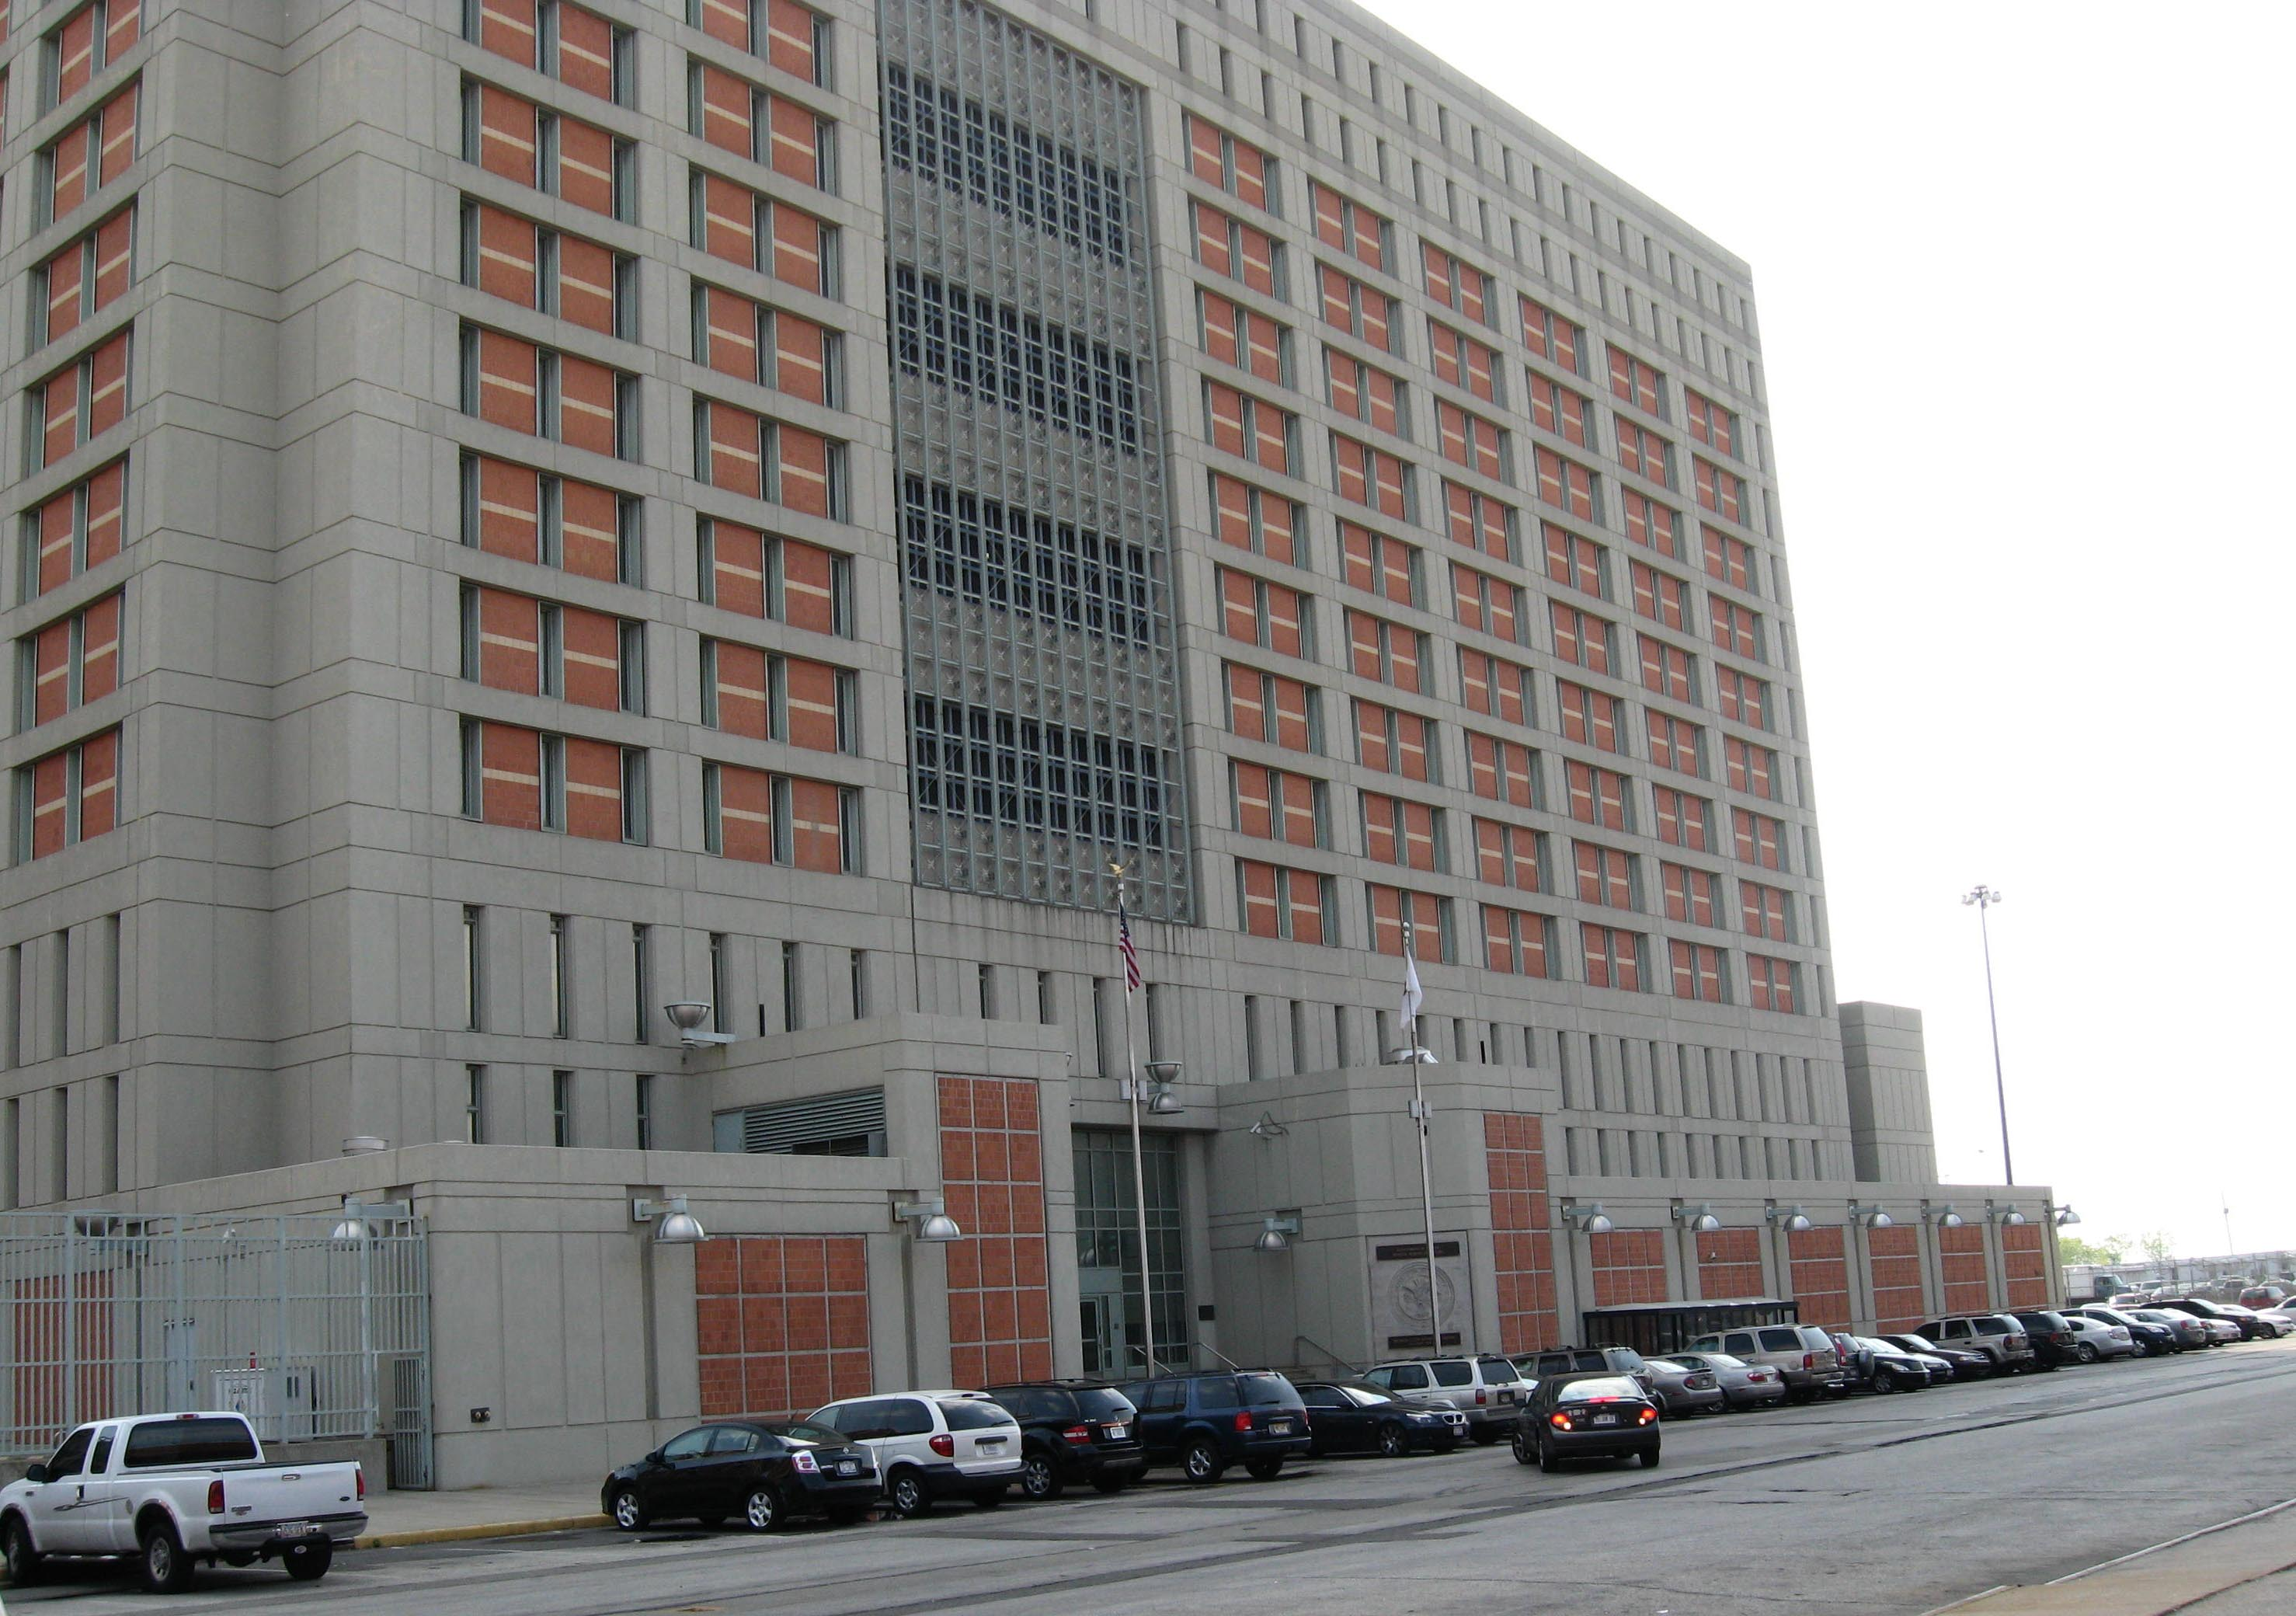 Metropolitan Detention Center, Brooklyn - Wikipedia